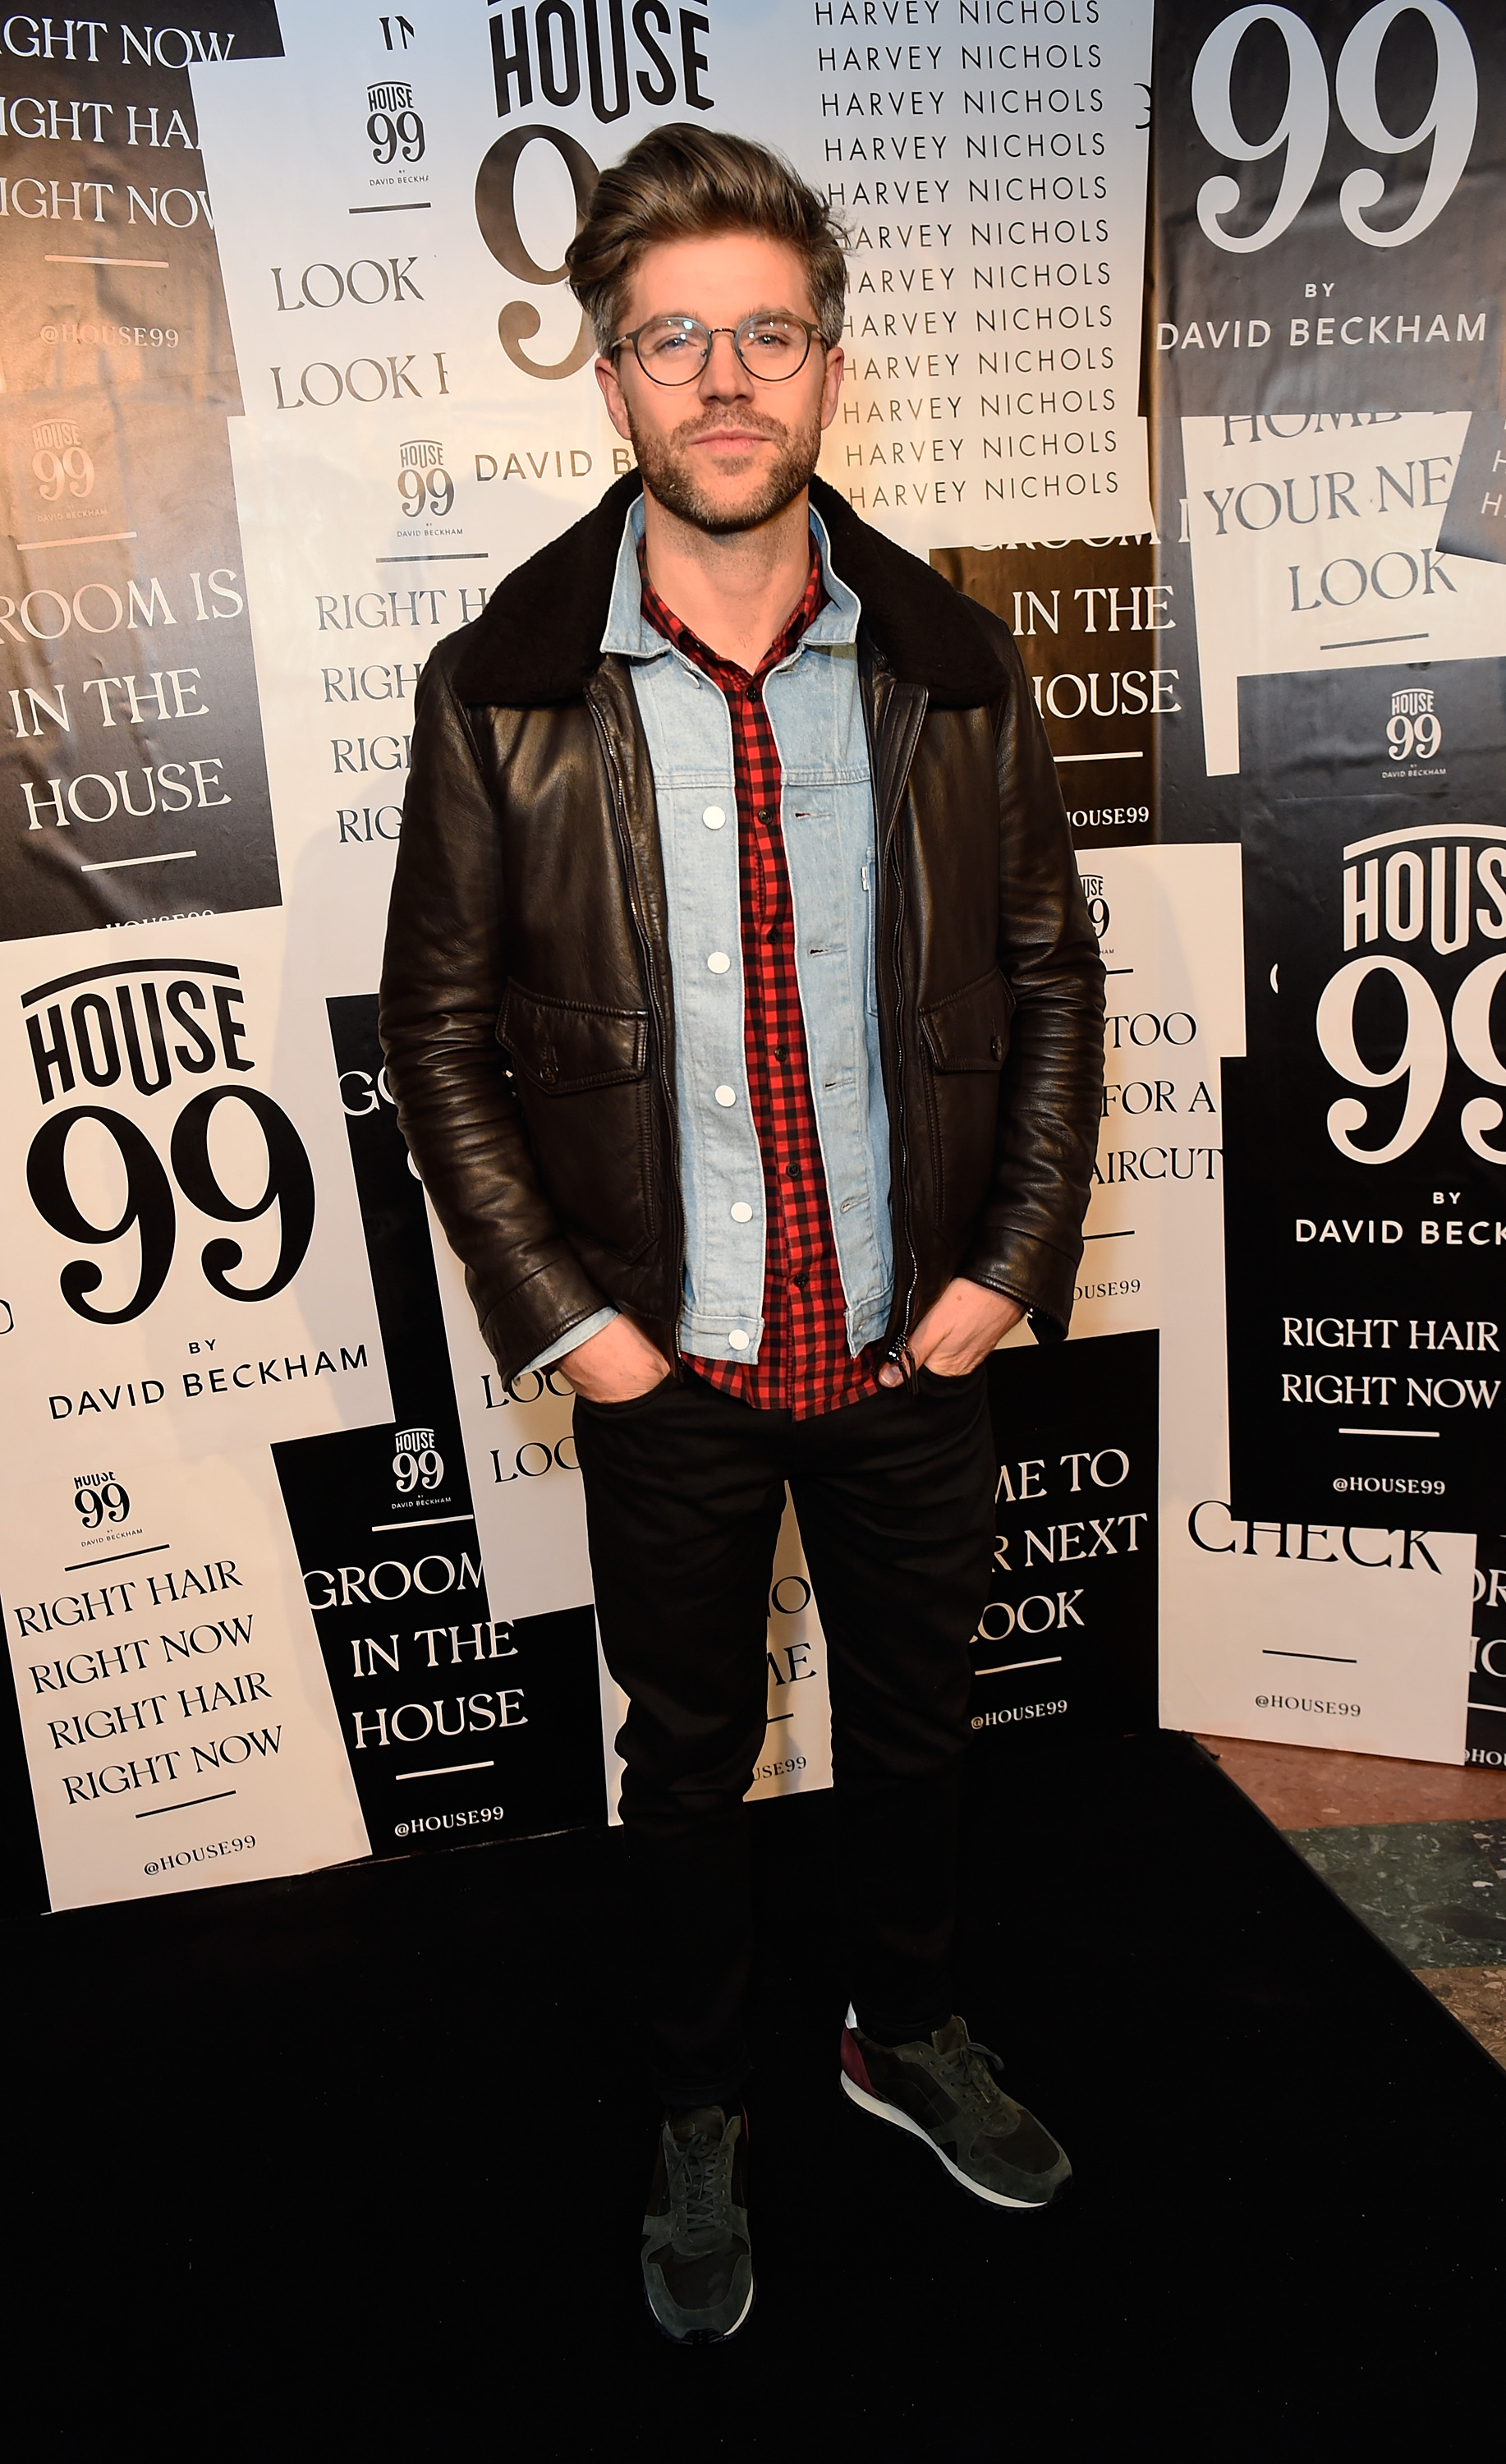 DMB-House 99 brand launch at Harvey Nichols03.JPG